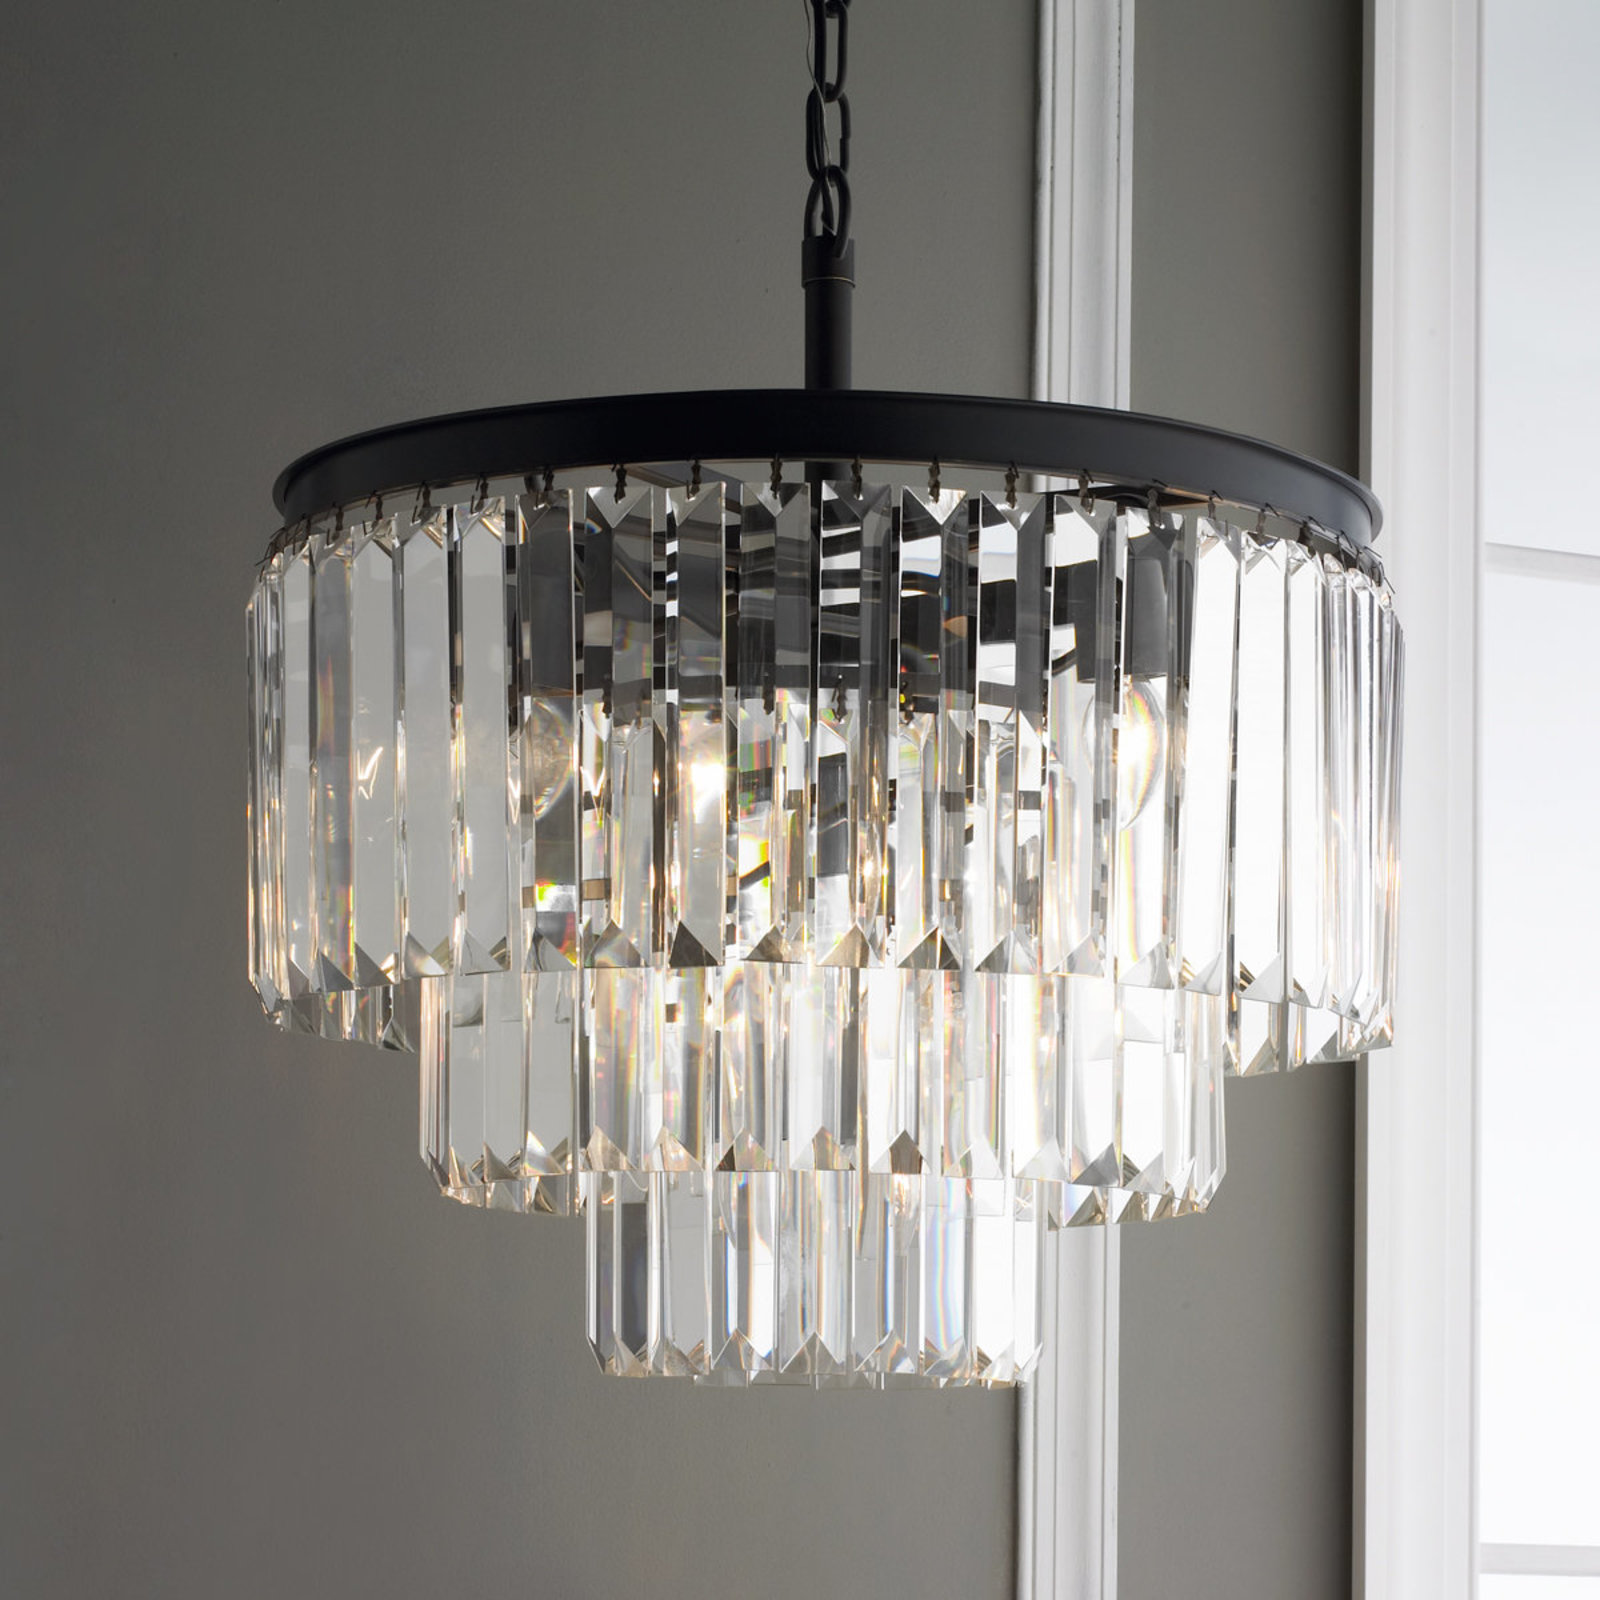 Luxury Interior Lighting Design with Glass Chandelier Shades: Chandelier Replacement Globes | Glass Globes For Chandeliers | Glass Chandelier Shades